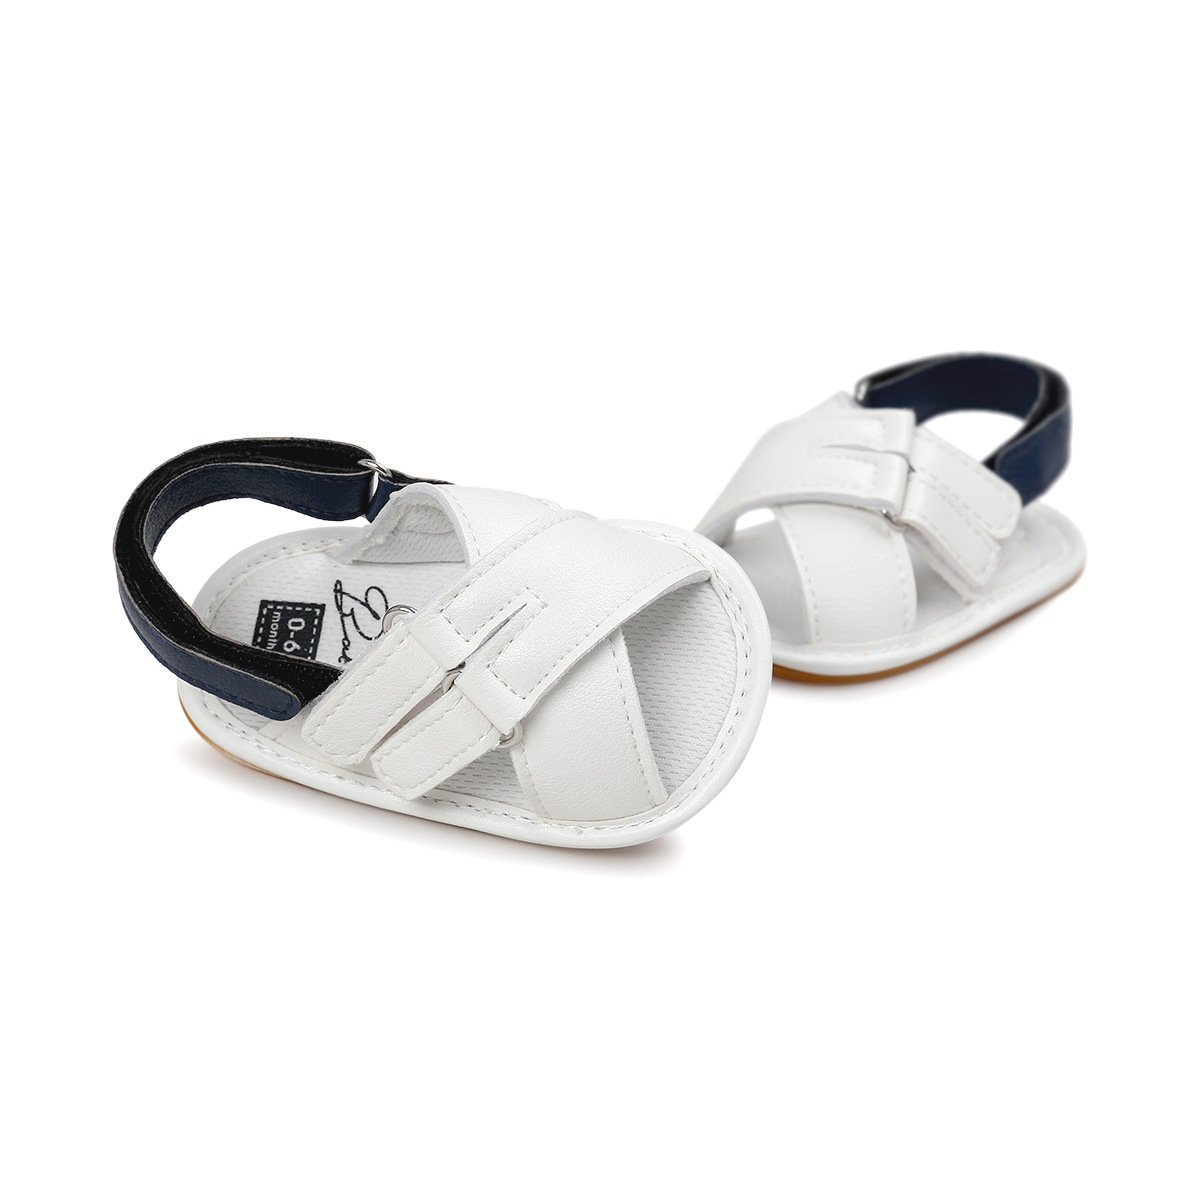 QGAKAGO Baby Girls Boys PU Leather Open Toe Rubber Sole Infant Toddler Summer Sandals Shoes